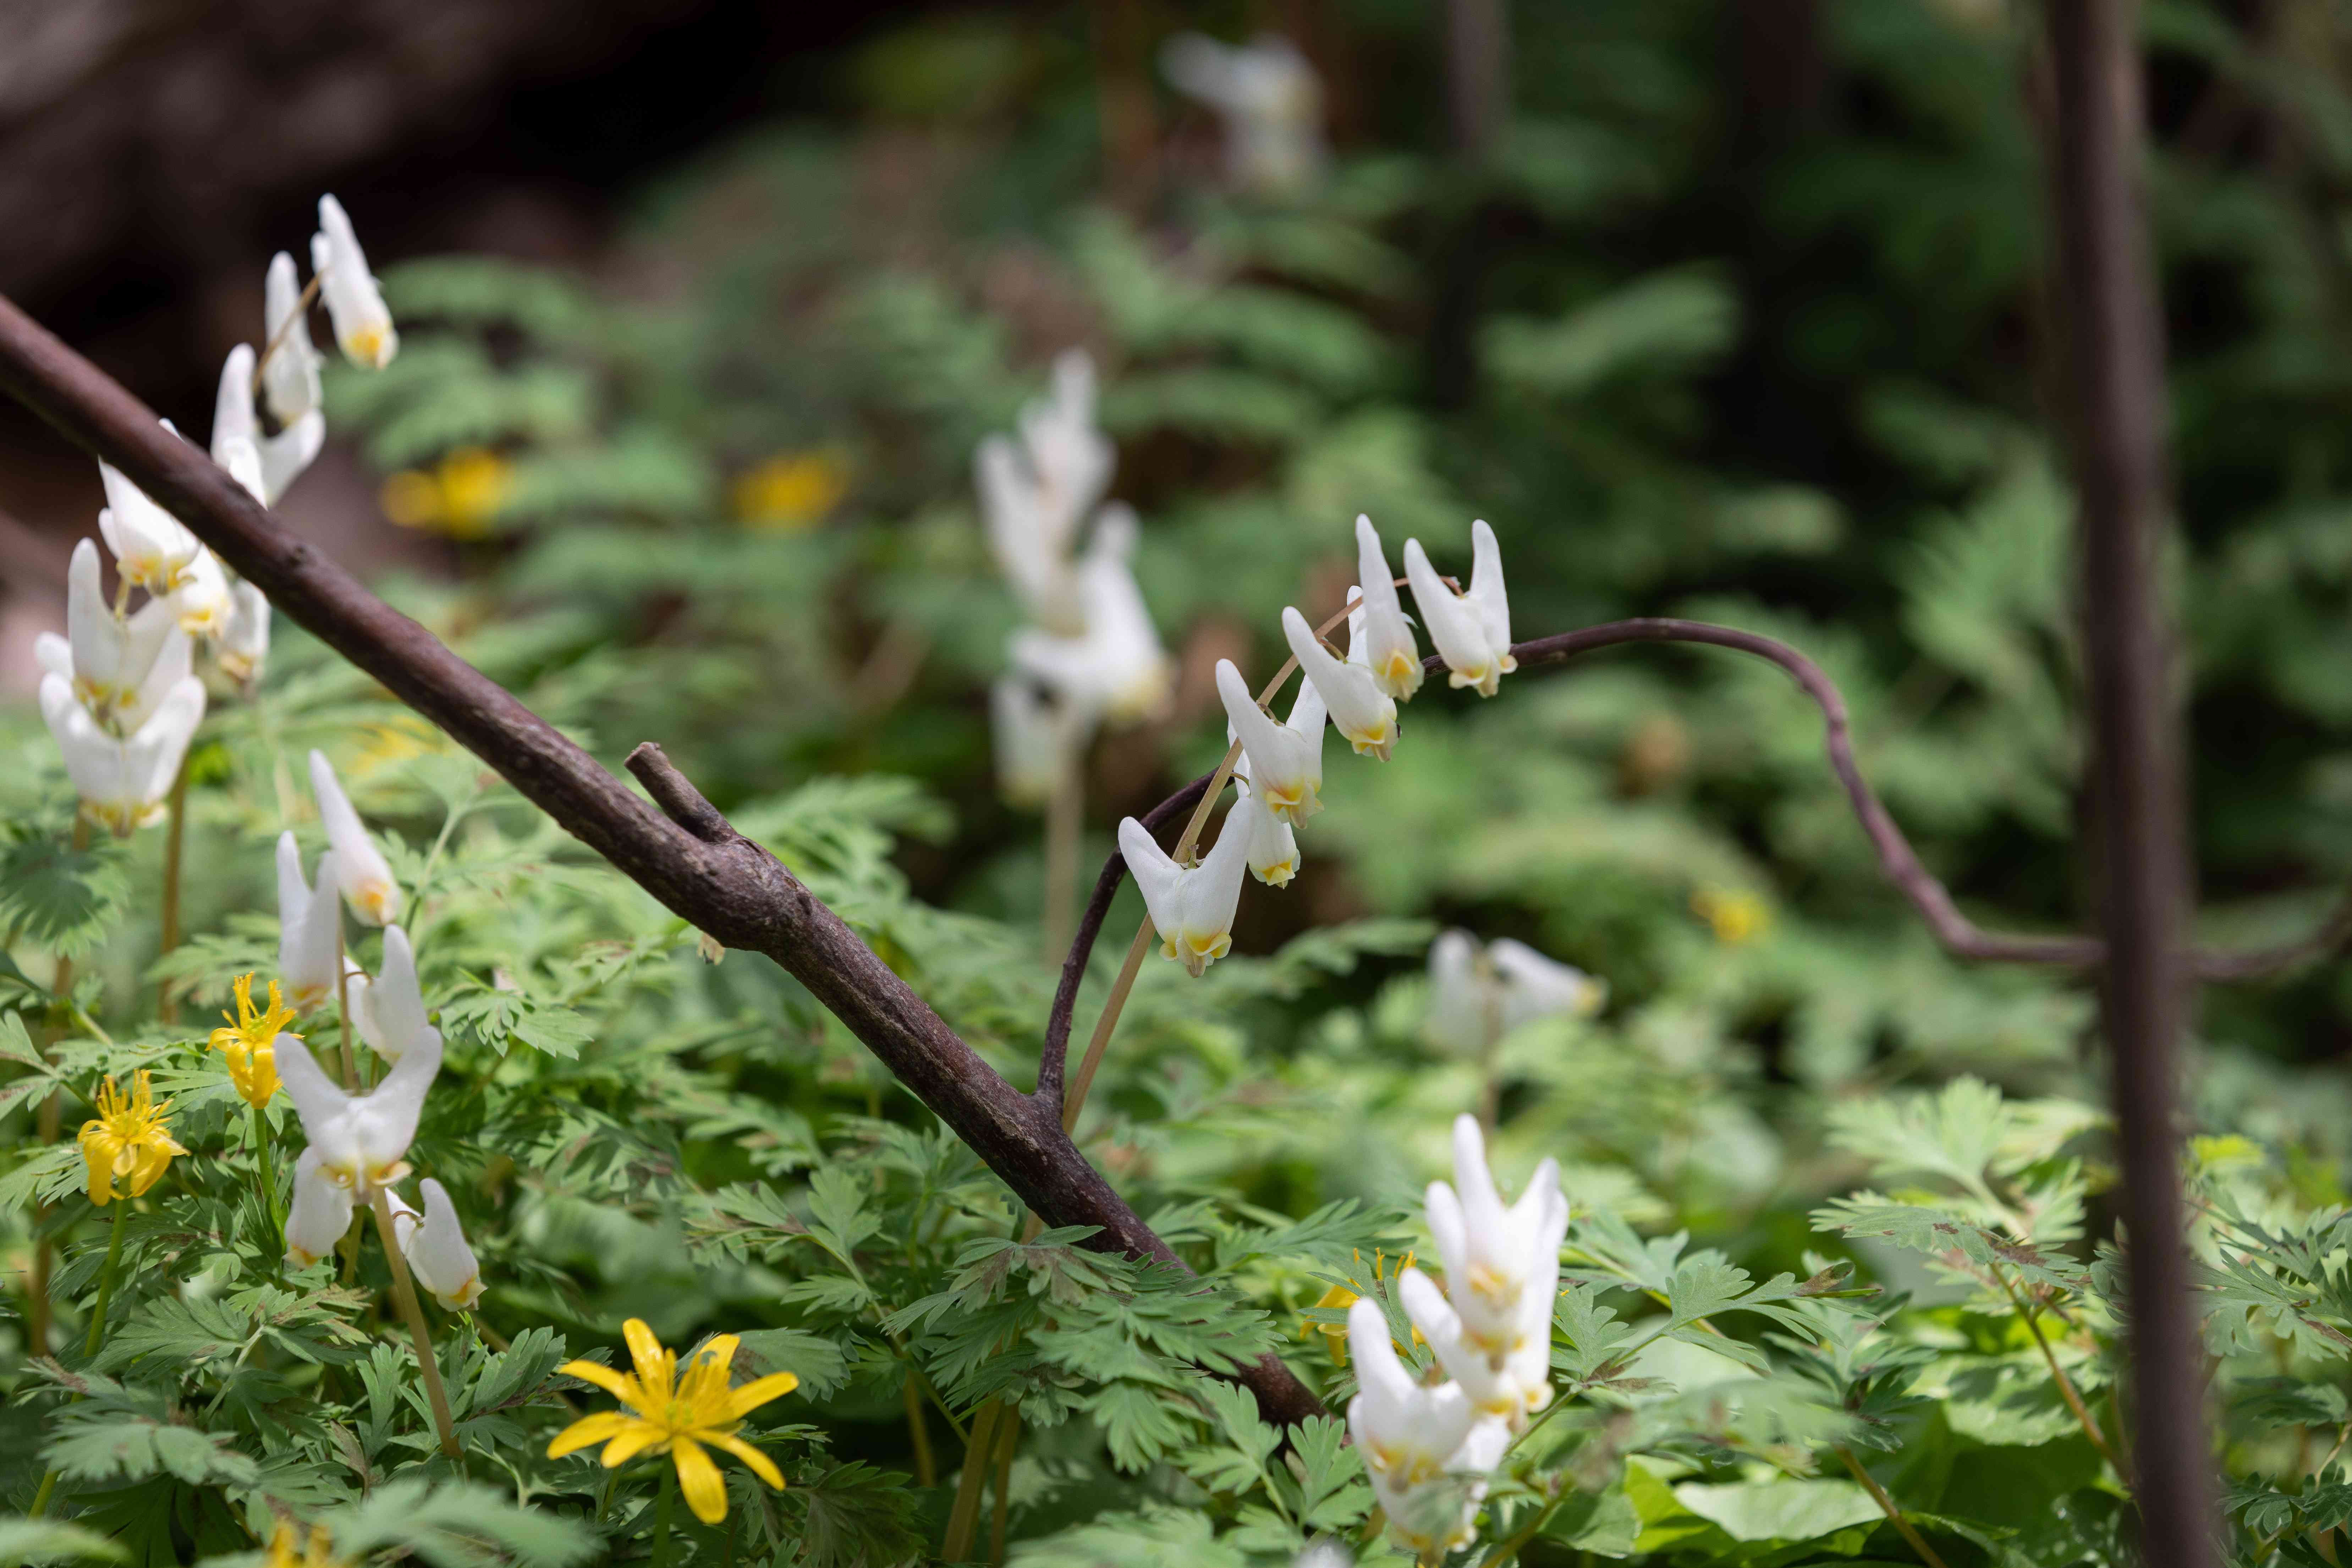 Dutchman's breeches small white flowers on thin stems above deeply-toothed foliage